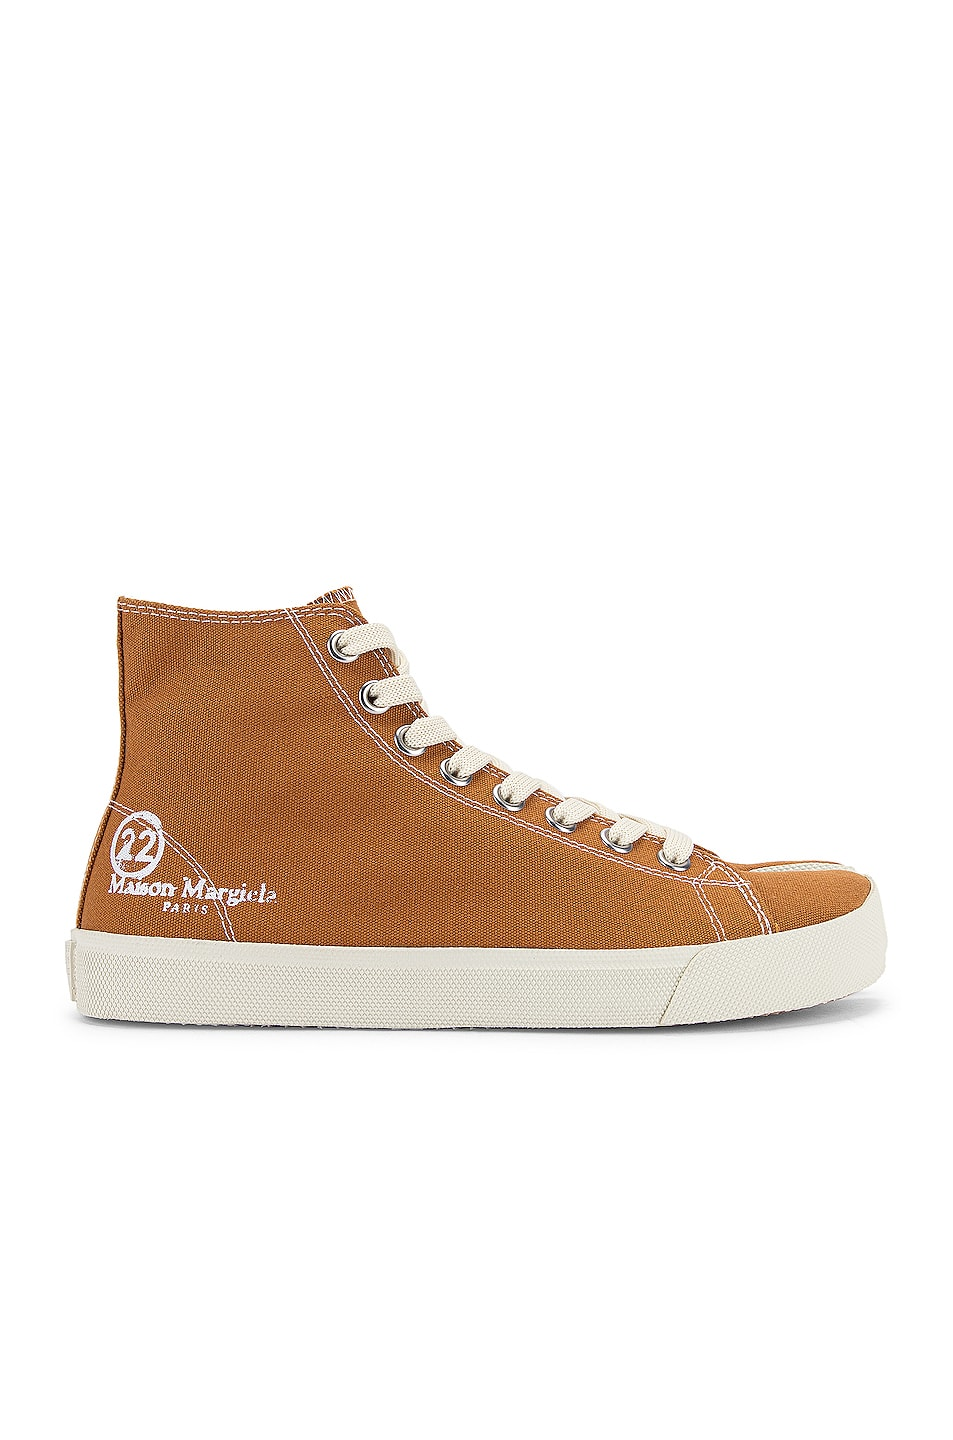 Image 2 of Maison Margiela Tabi High Top Canvas Sneakers in Nude